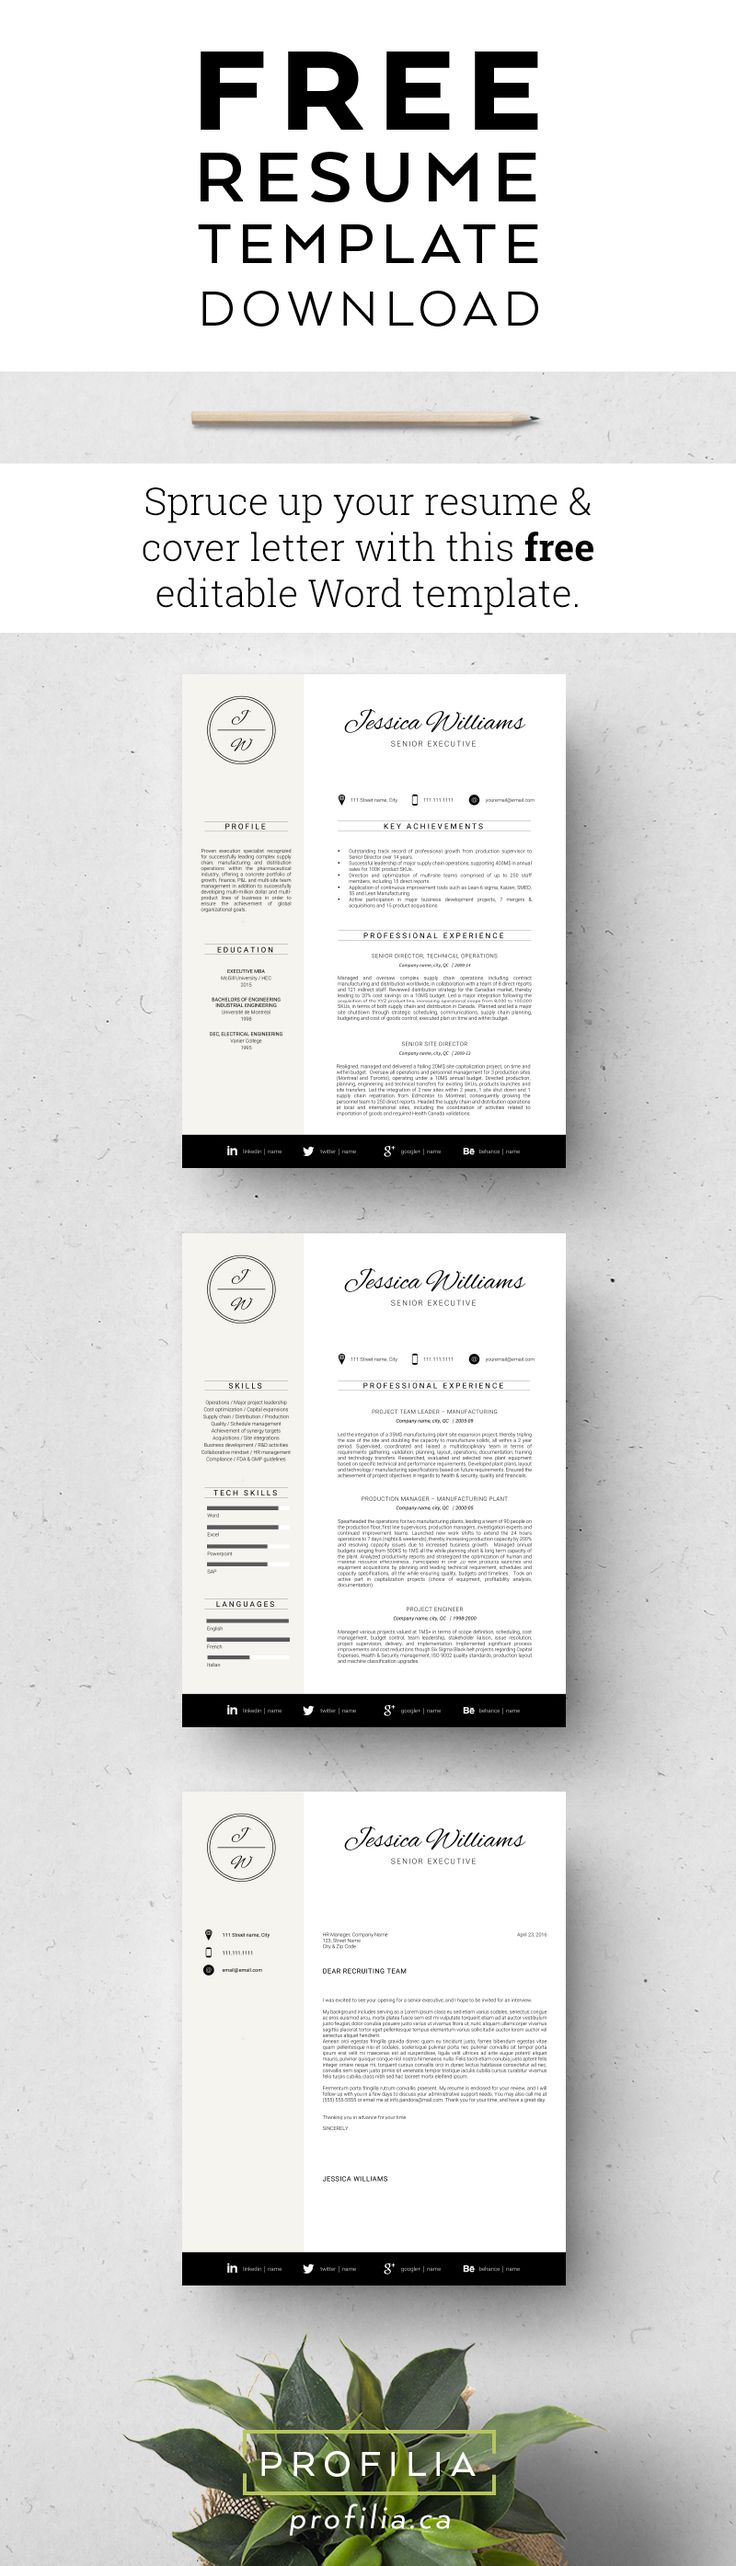 free resume template refresh your job search with this free resume cover - Free Resume And Cover Letter Templates